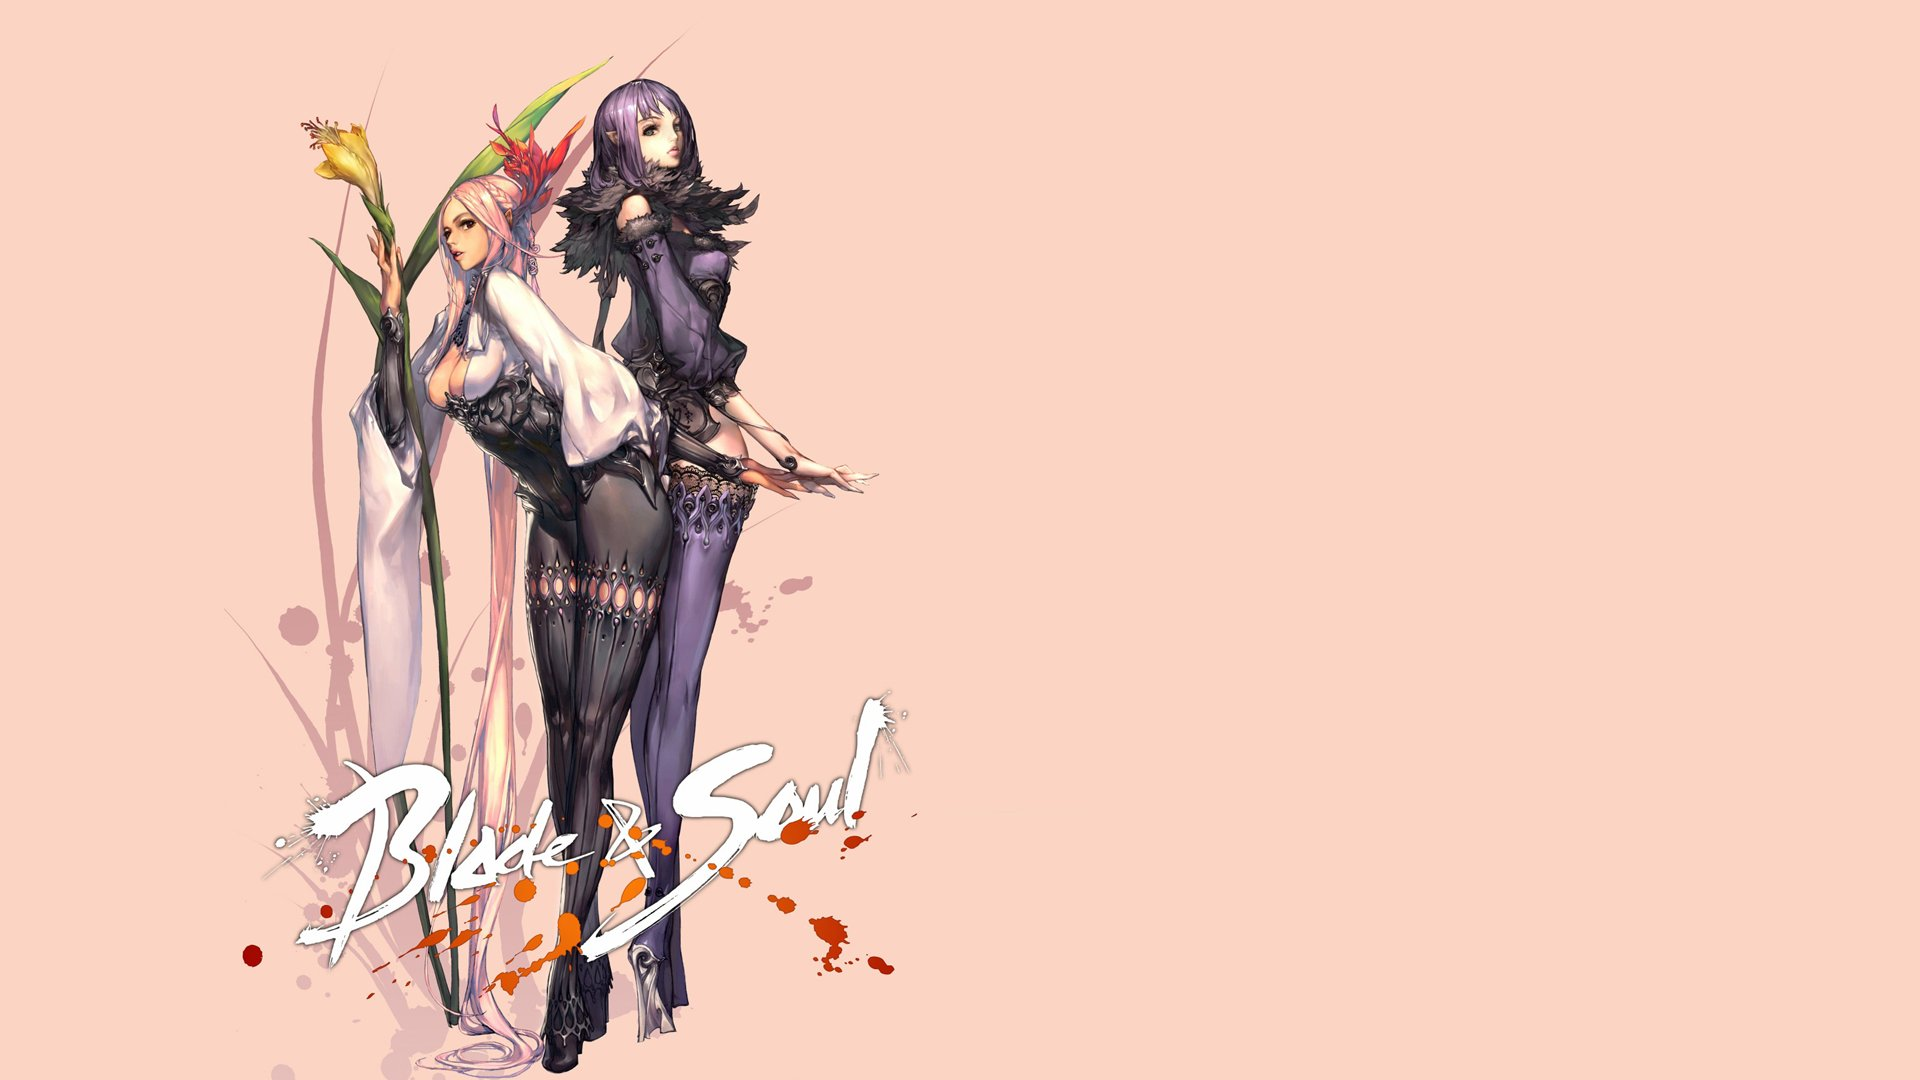 Blade And Soul Wallpaper: BLADE And SOUL Asian Martial Arts Action Fighting 1blades